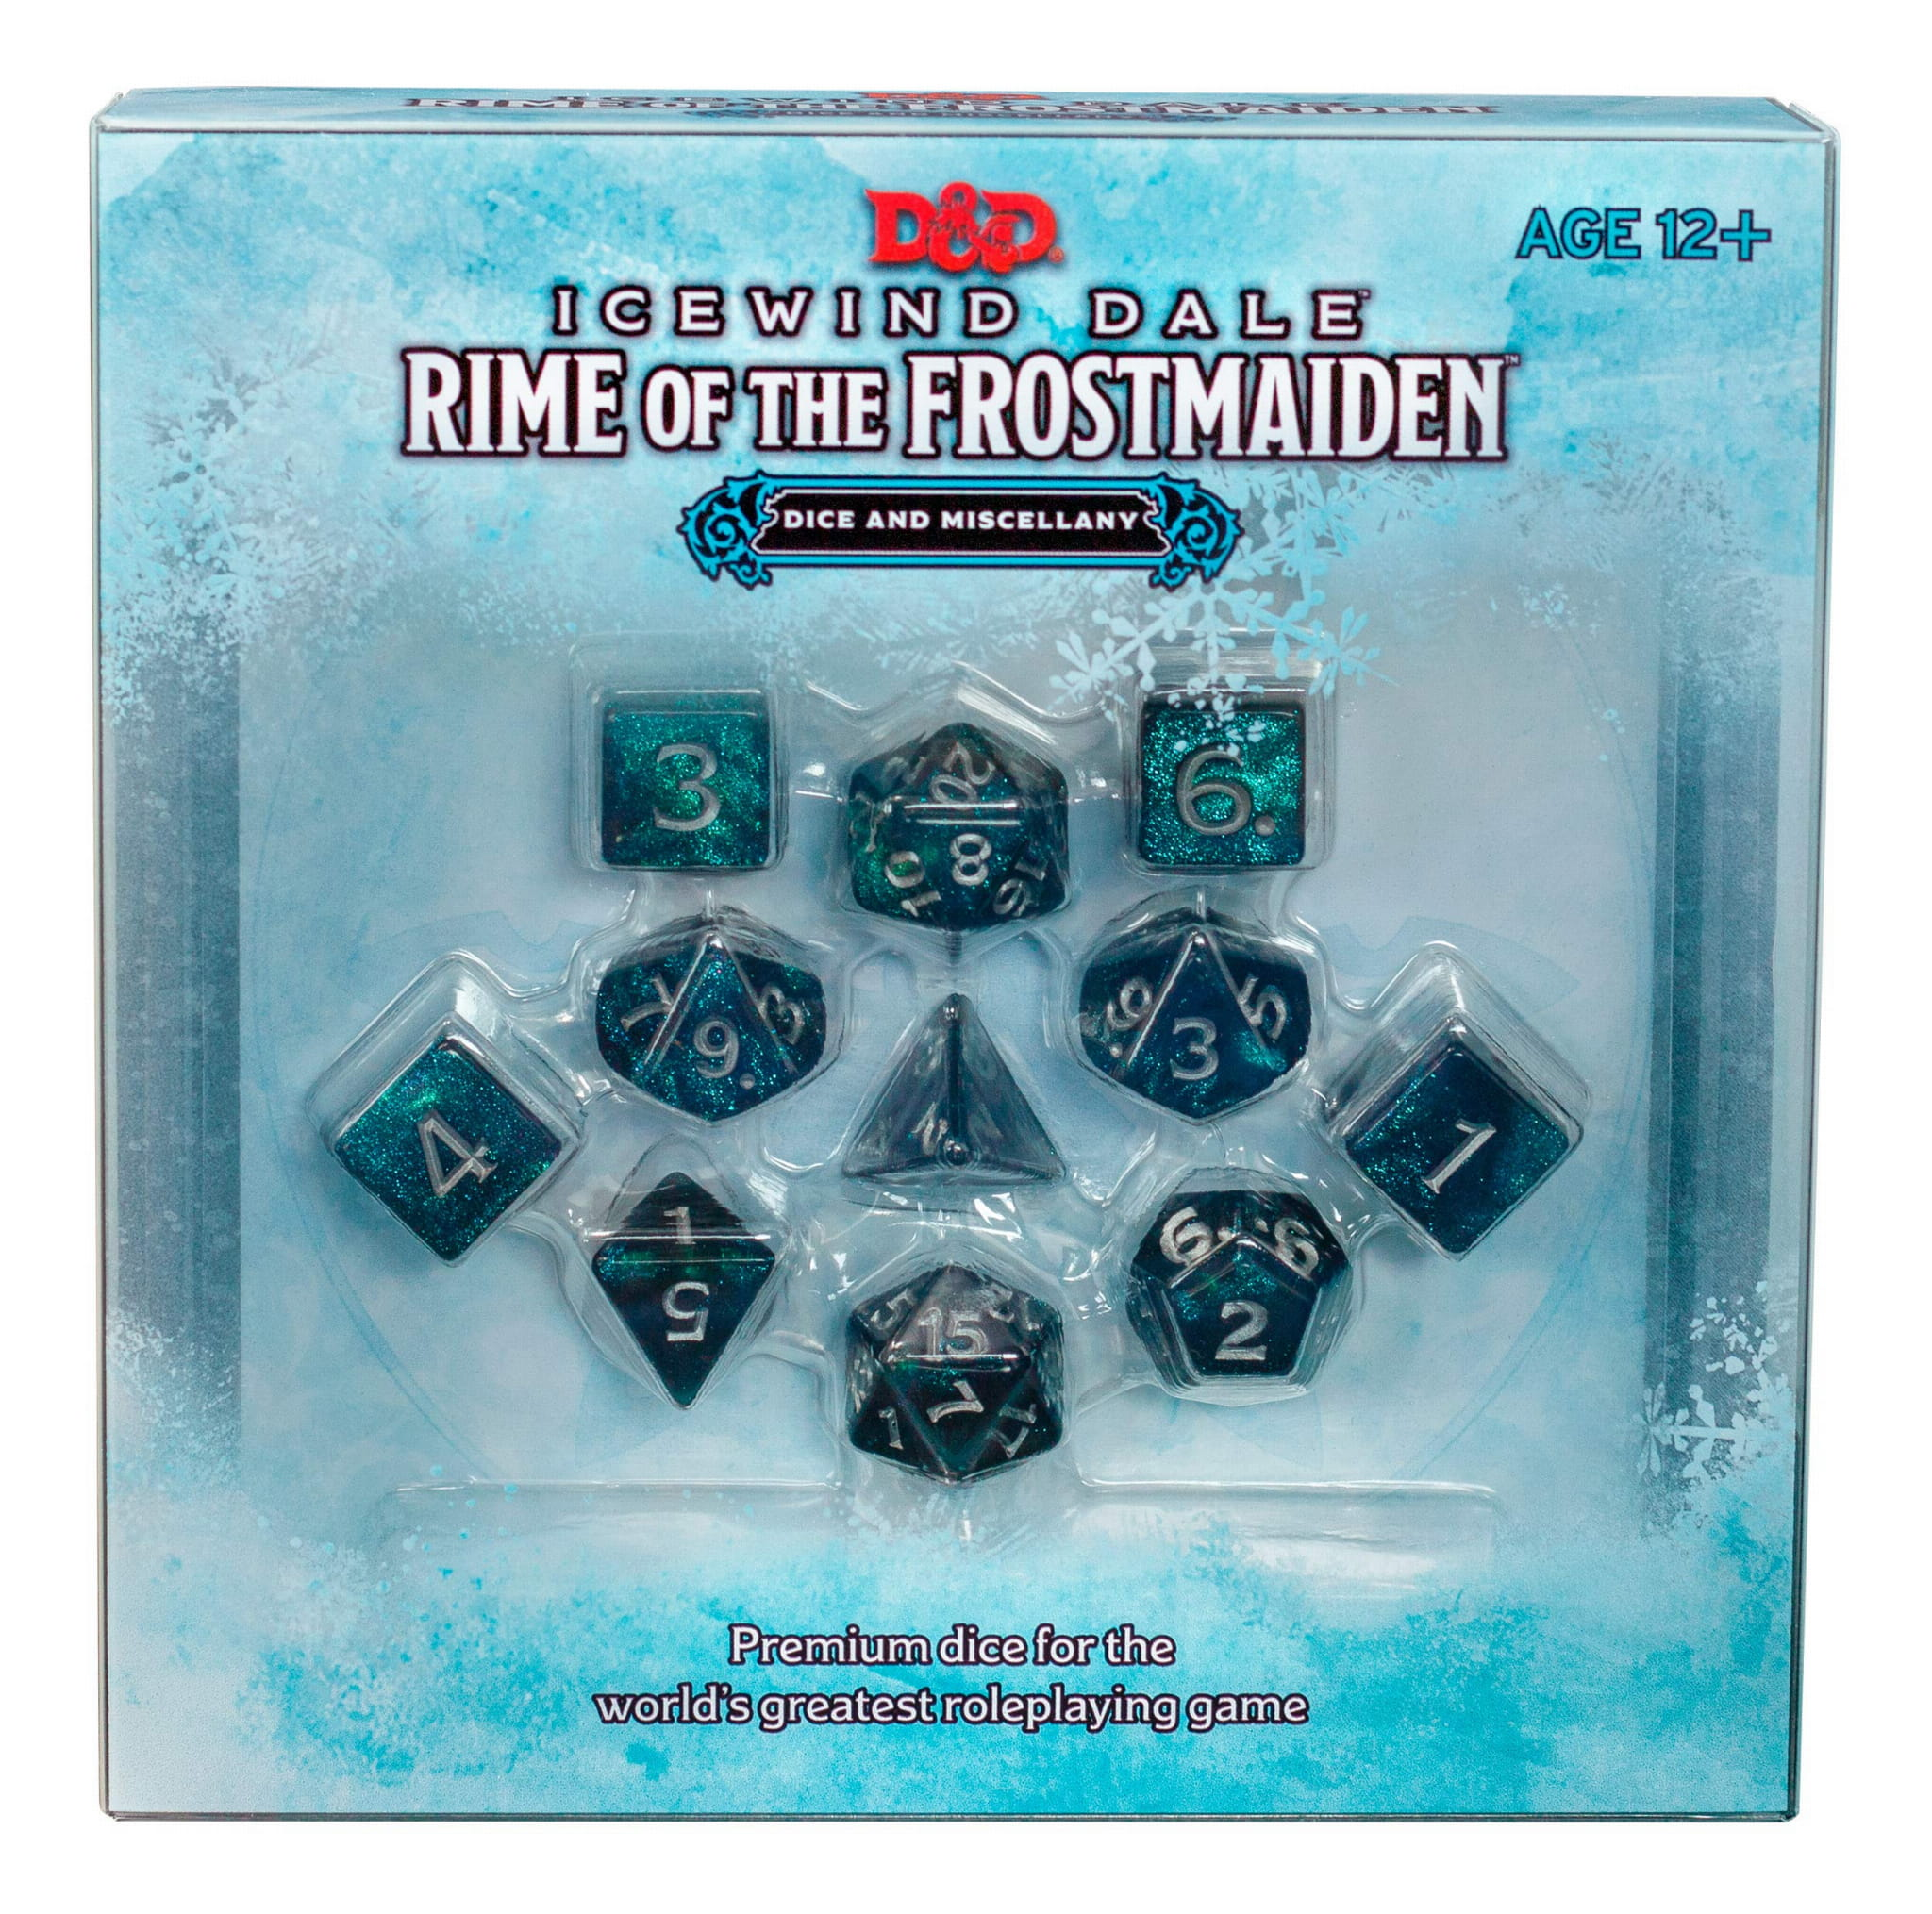 D&D RPG: Icewind Dale: Rime of the Frostmaiden Dice & Miscellany